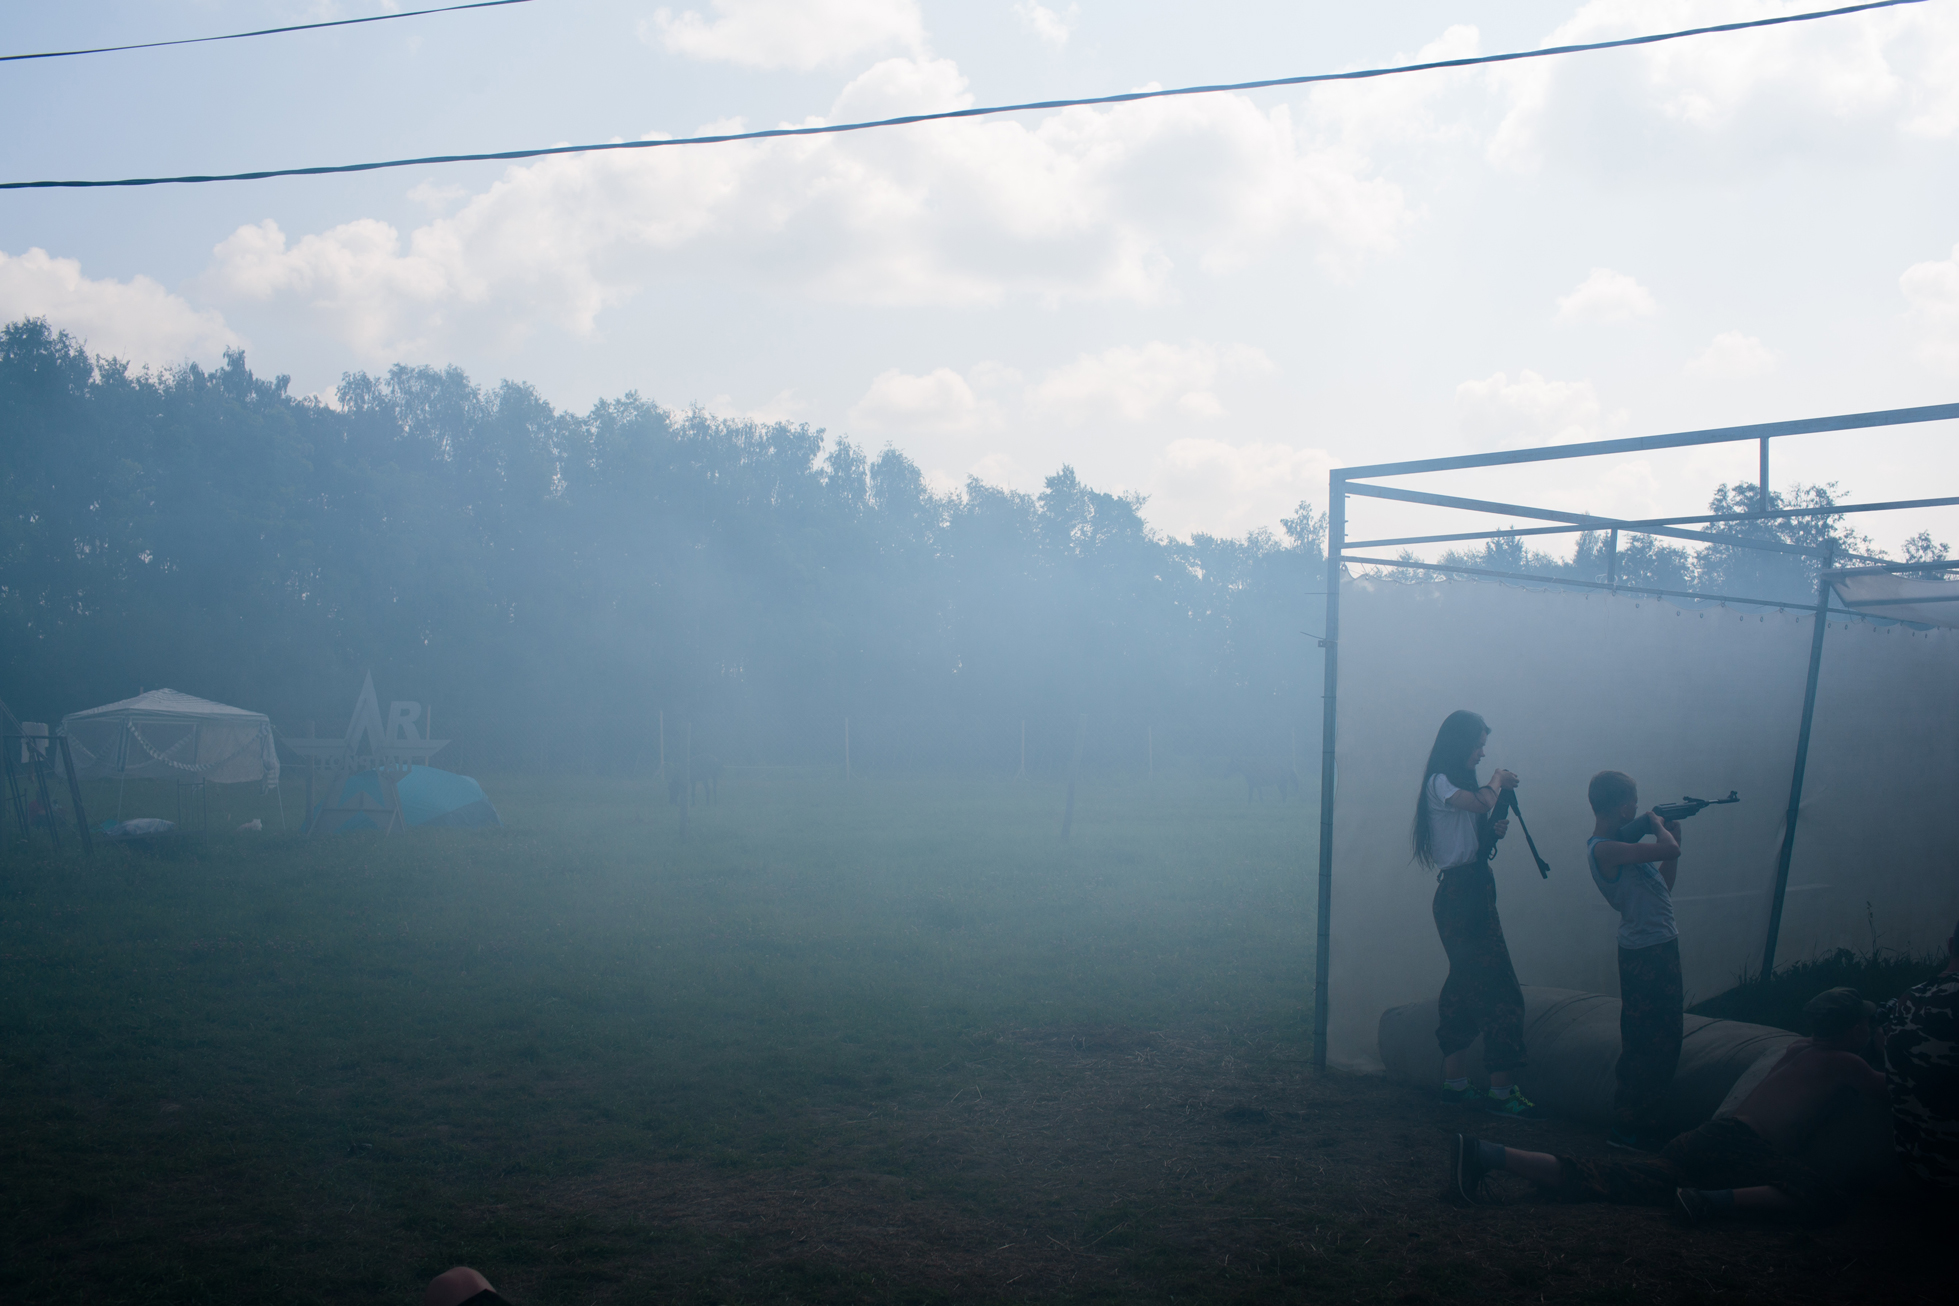 Campers at target practice. The smoke is from launching fake grenades.